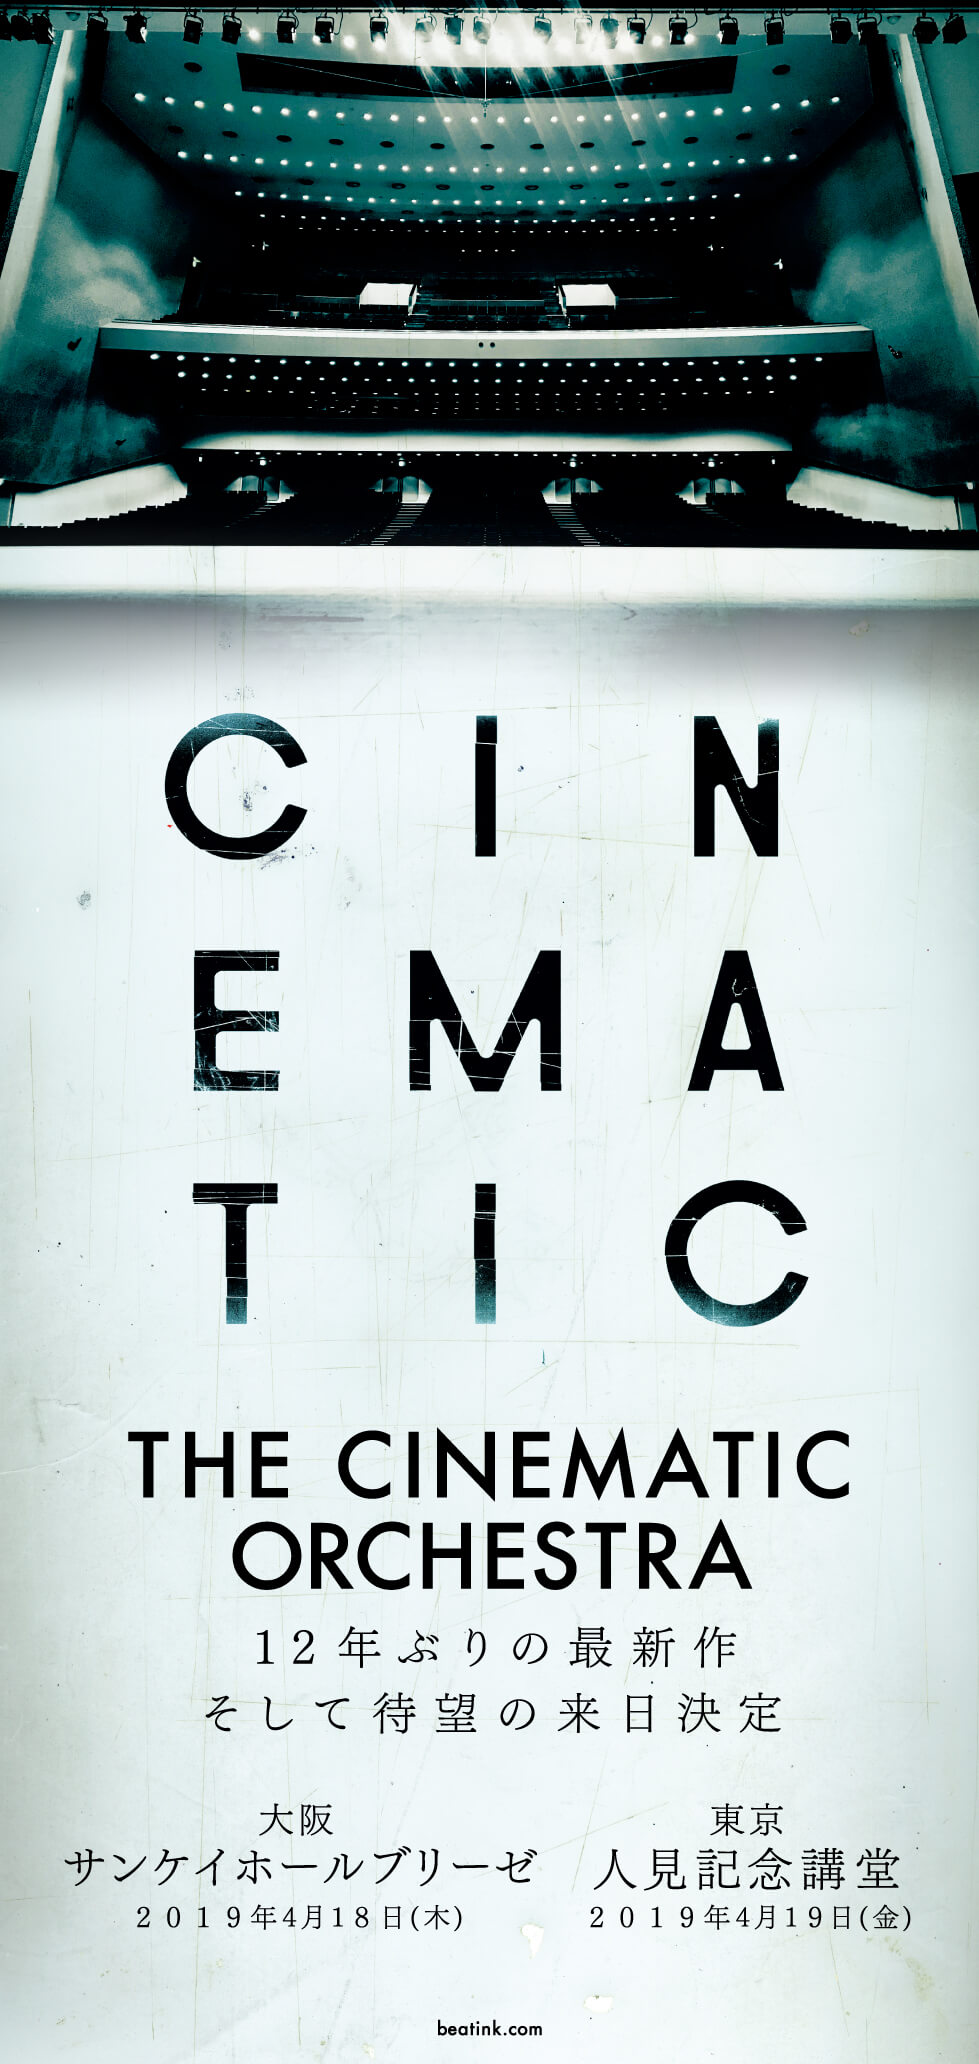 The Cinematic Orchestra Live in Japan